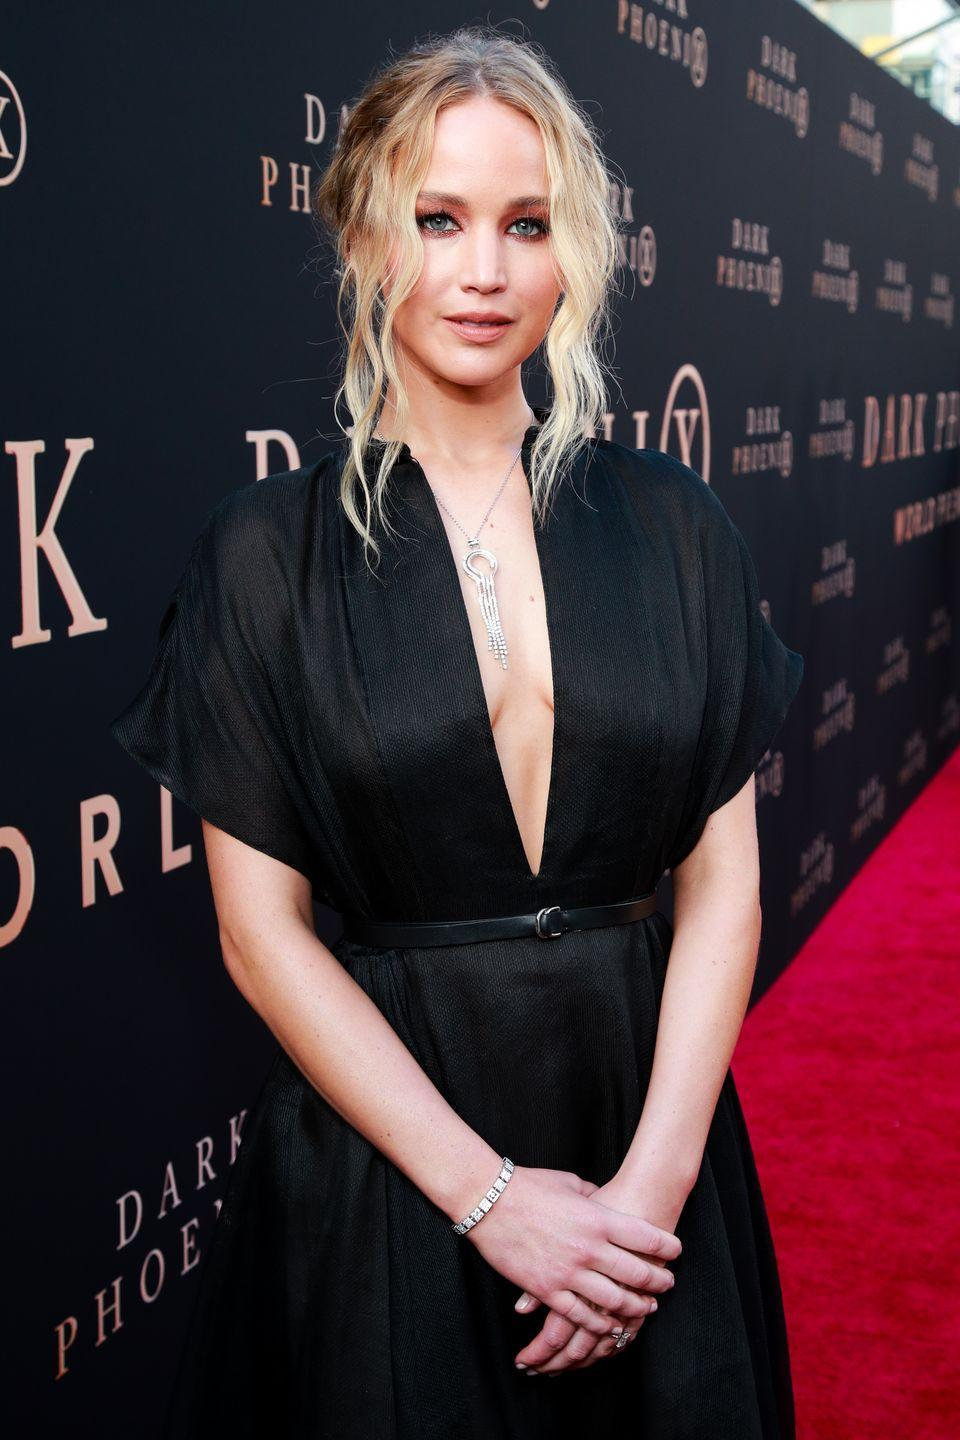 <p>JLaw played the role of a suburban housewife so convincingly in <em>American Hustle</em>, we almost forgot she was just in her mid-20s at the time. She was also the second-youngest winner of the Academy Award for Best Actress in 2012 at the age of 22.</p>